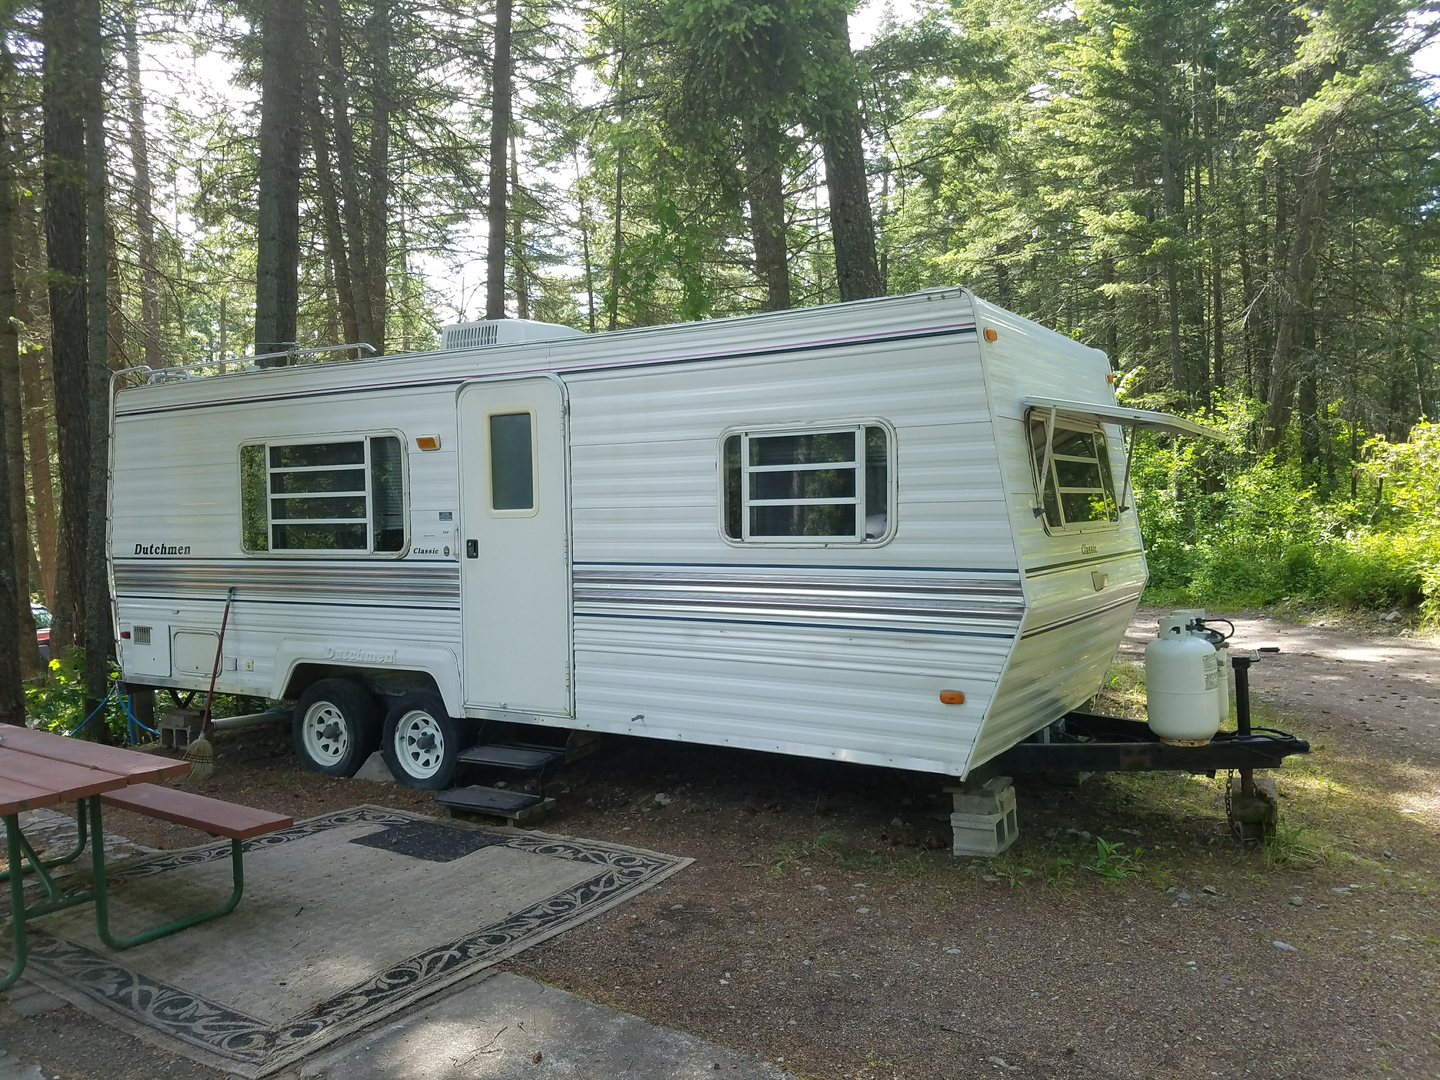 Outback Montana Rv Park & Campground - Cabin Rentals, Rv Camping, Rv